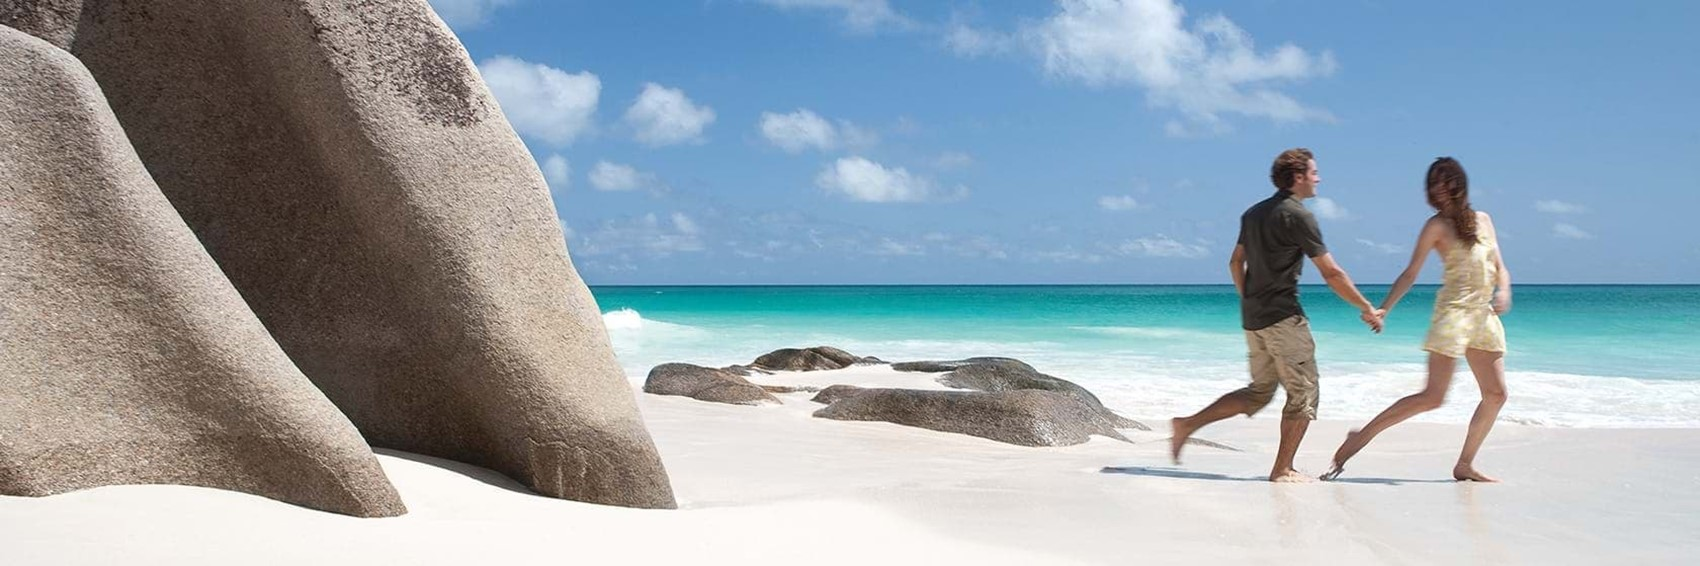 Constance Hotels Resorts Seychelles - Seychelles